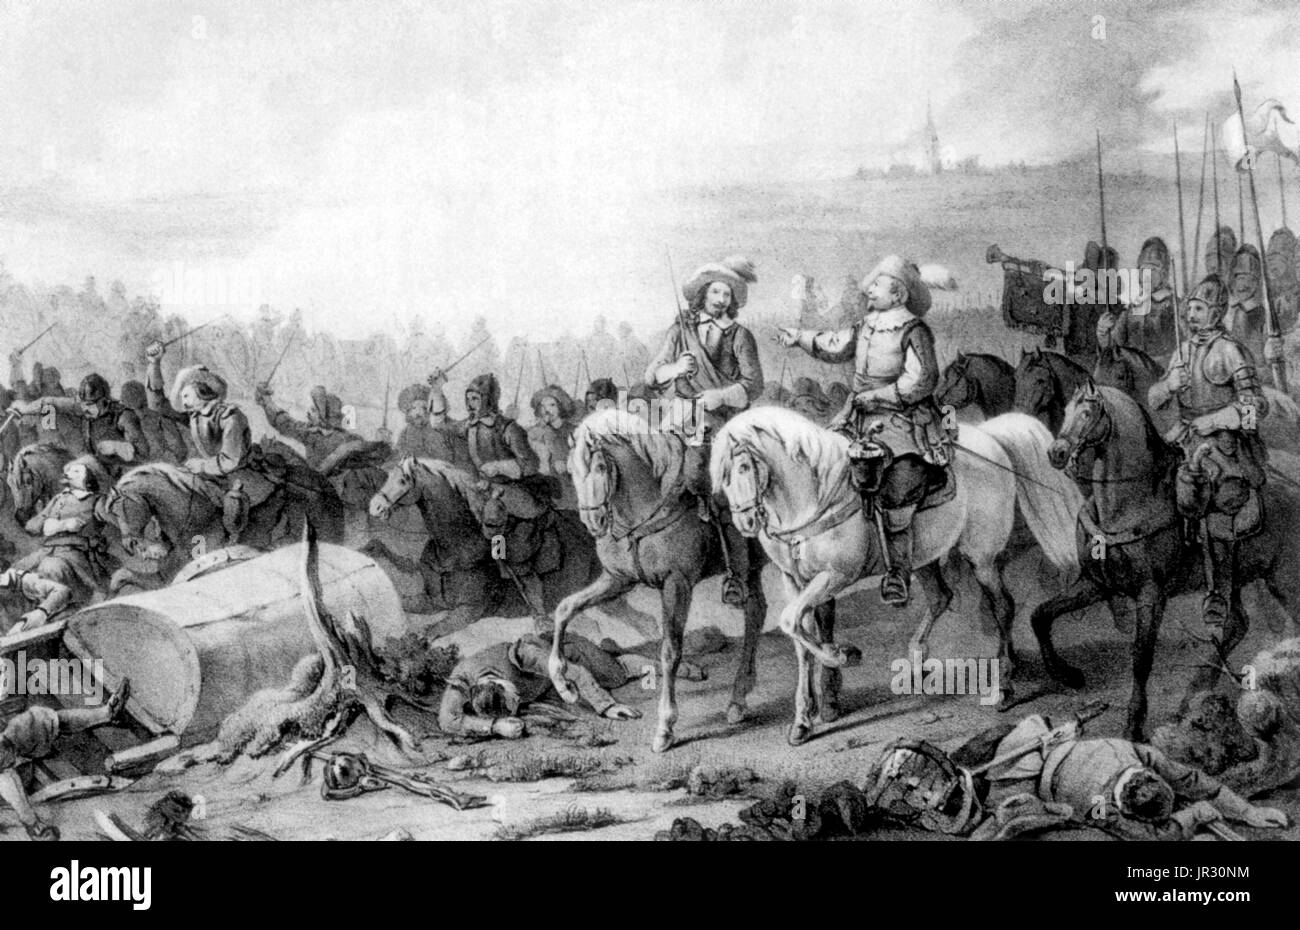 thirty year war essays The reason for the battle of the thirty years' war was to battle for religious control of holy roman empire the thirty years war was caused by the split of the catholic church, oterwise known as.